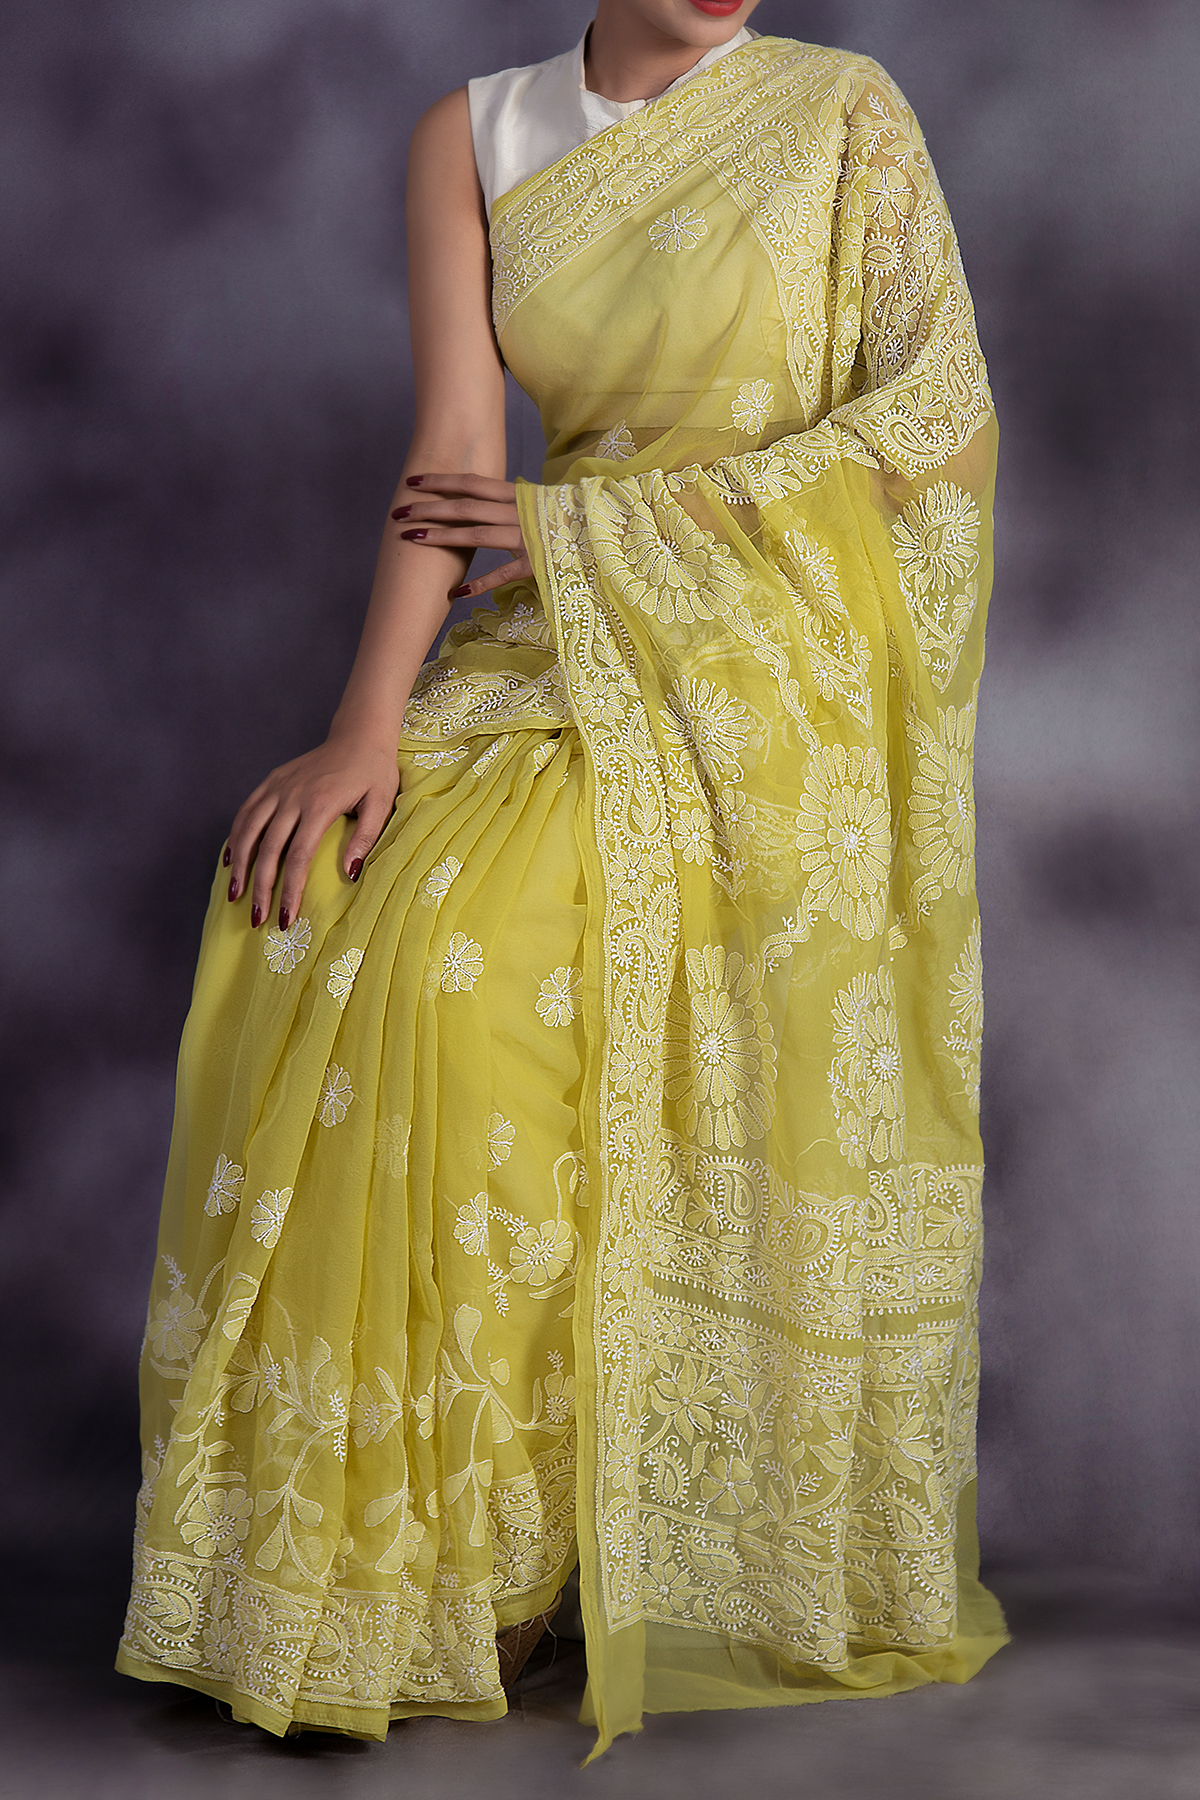 Olive Green Colour Hand Embroidered Lucknowi Chikankari Saree (With Blouse - Georgette) GA250594